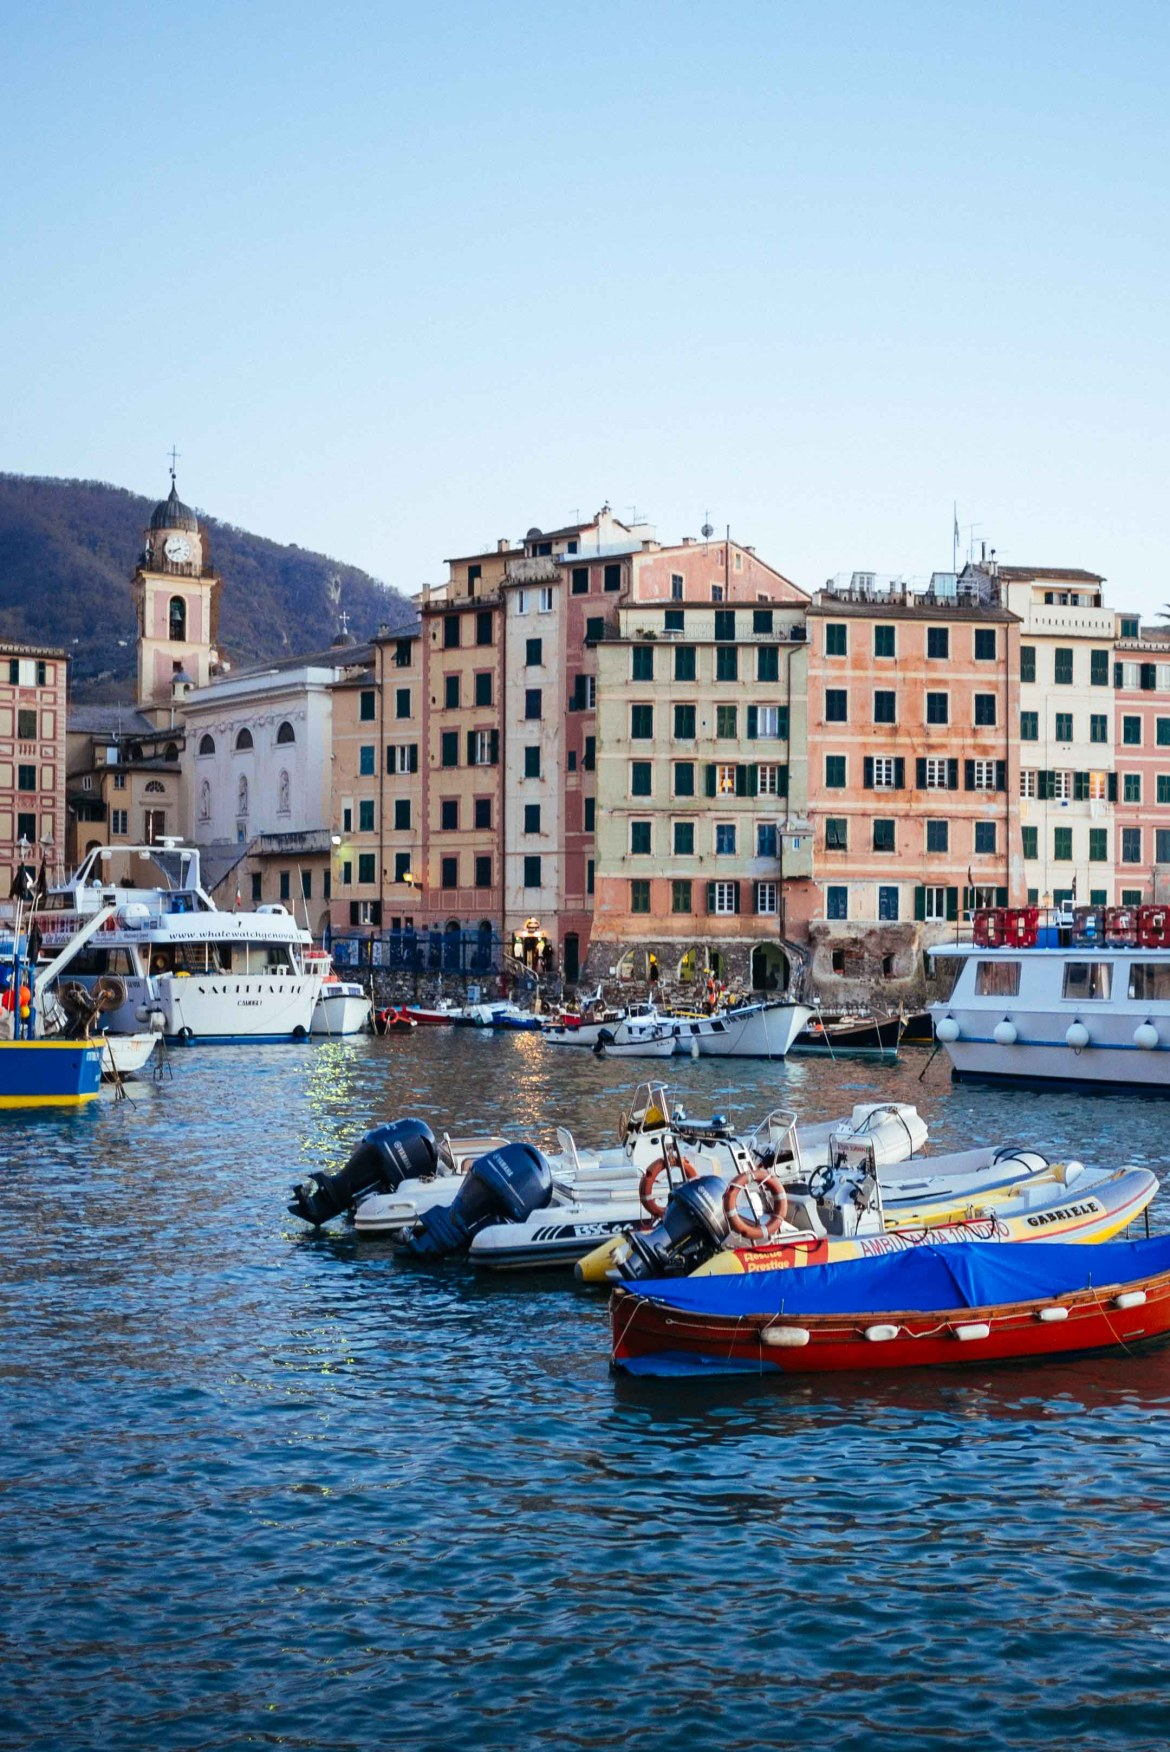 Visit this Italian Beach town that no one knows about - Camogli, Italy.